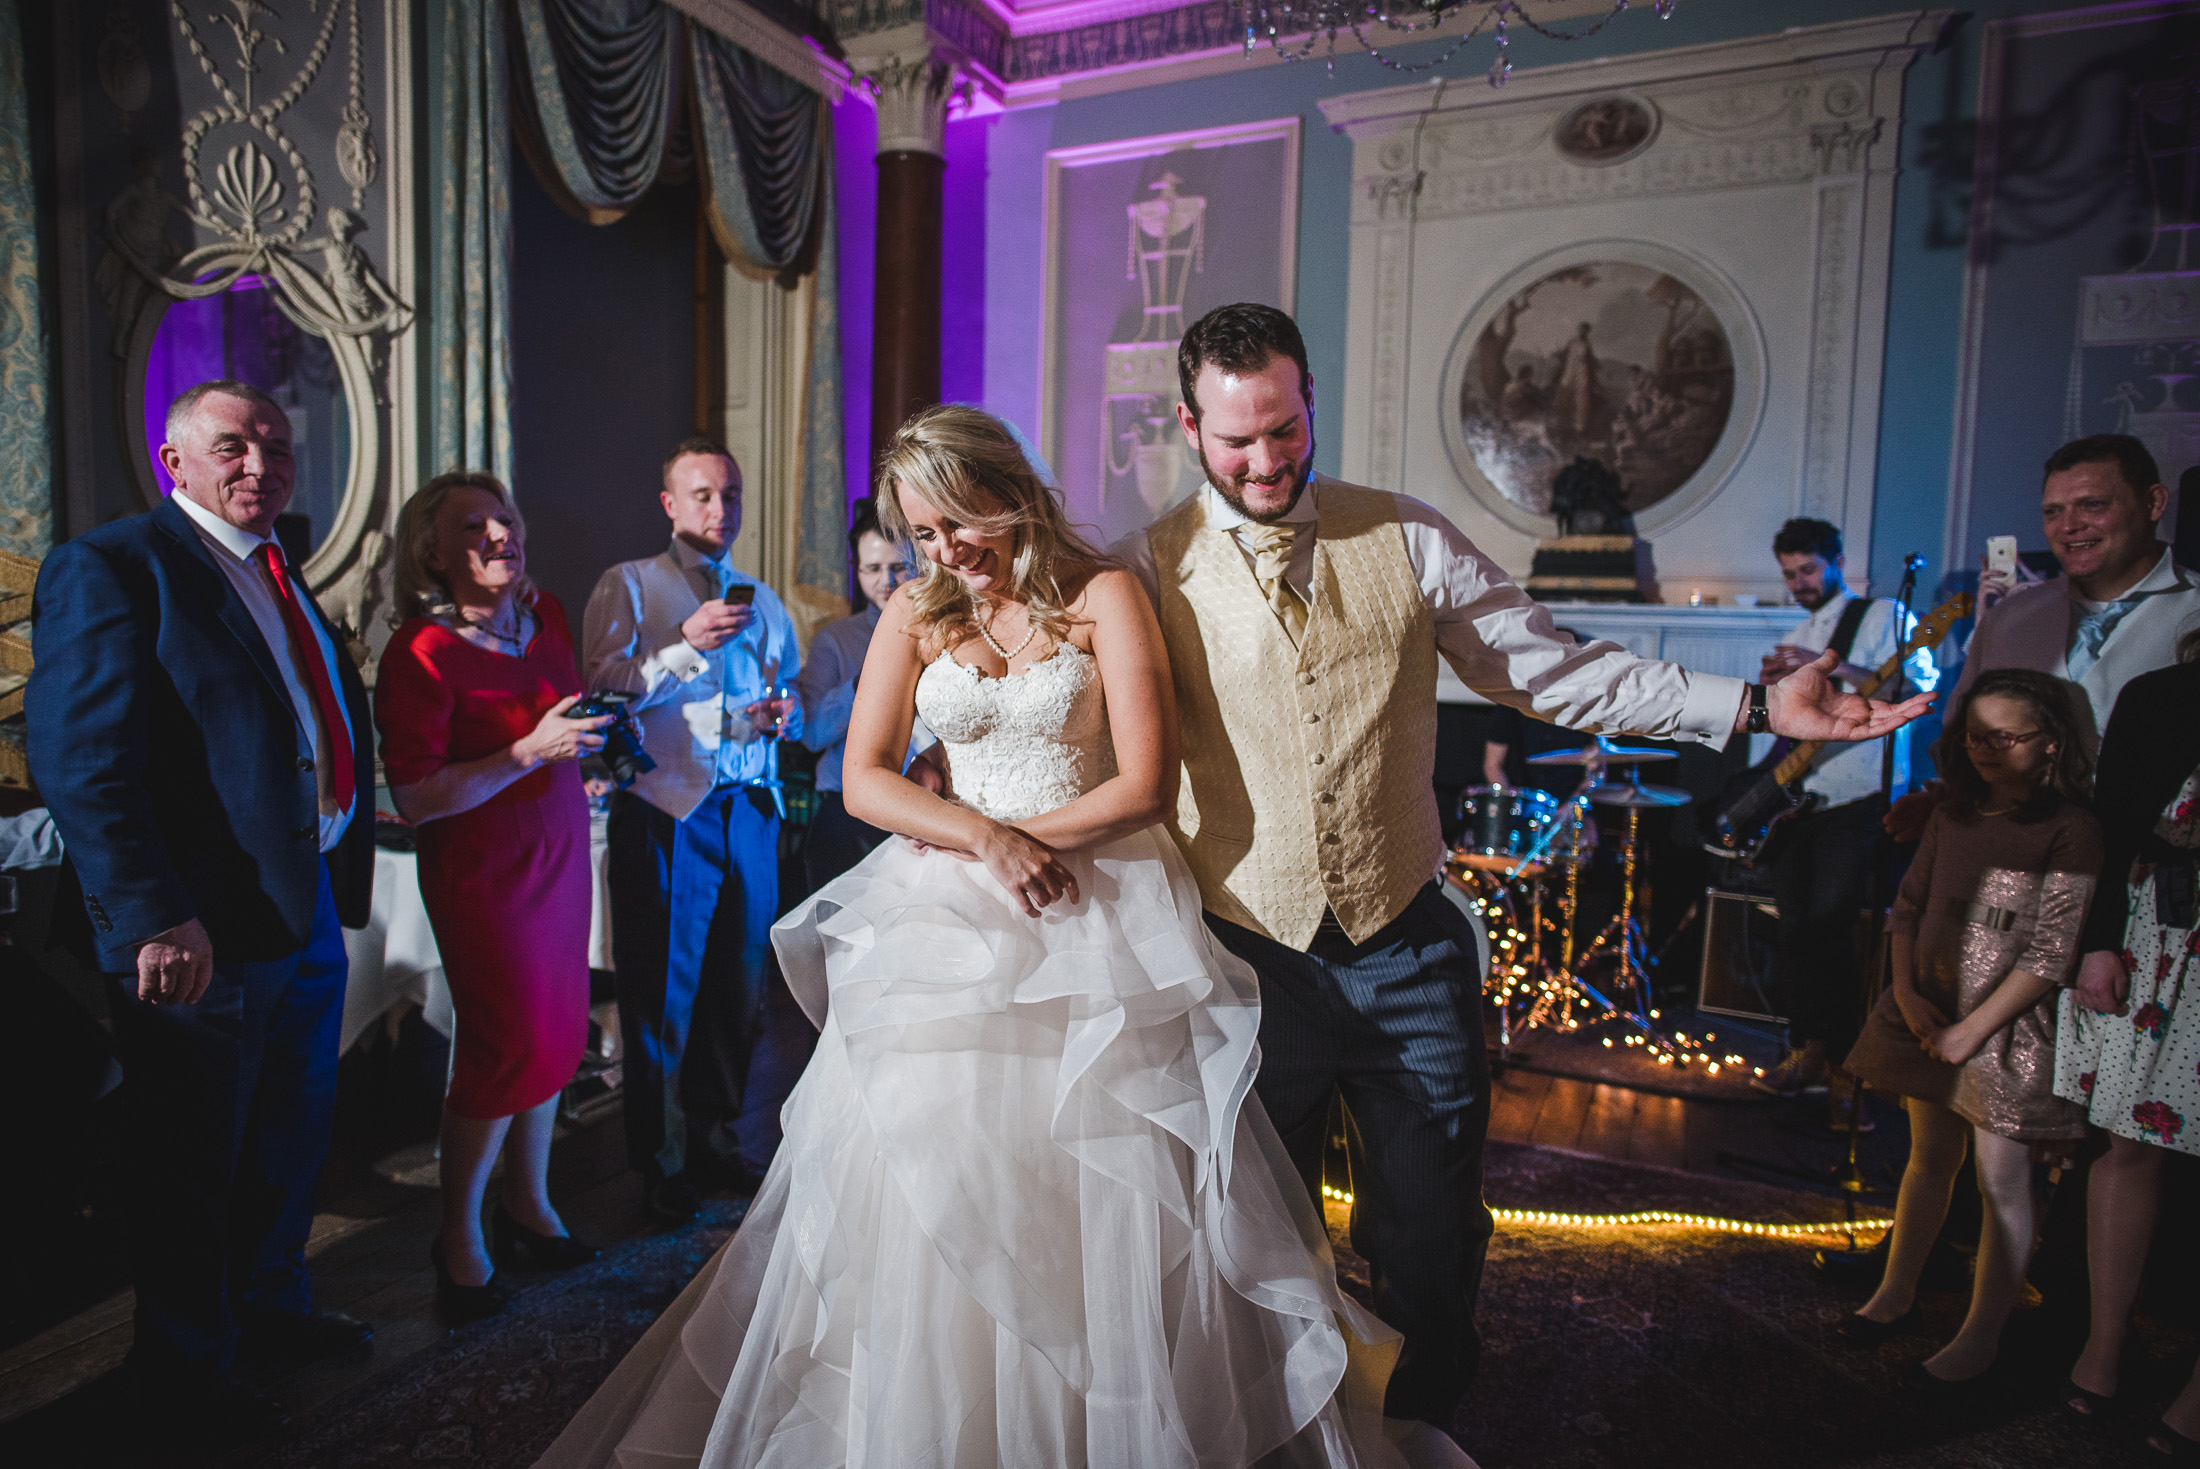 18 Bride Groom Wedding London Photography.jpg